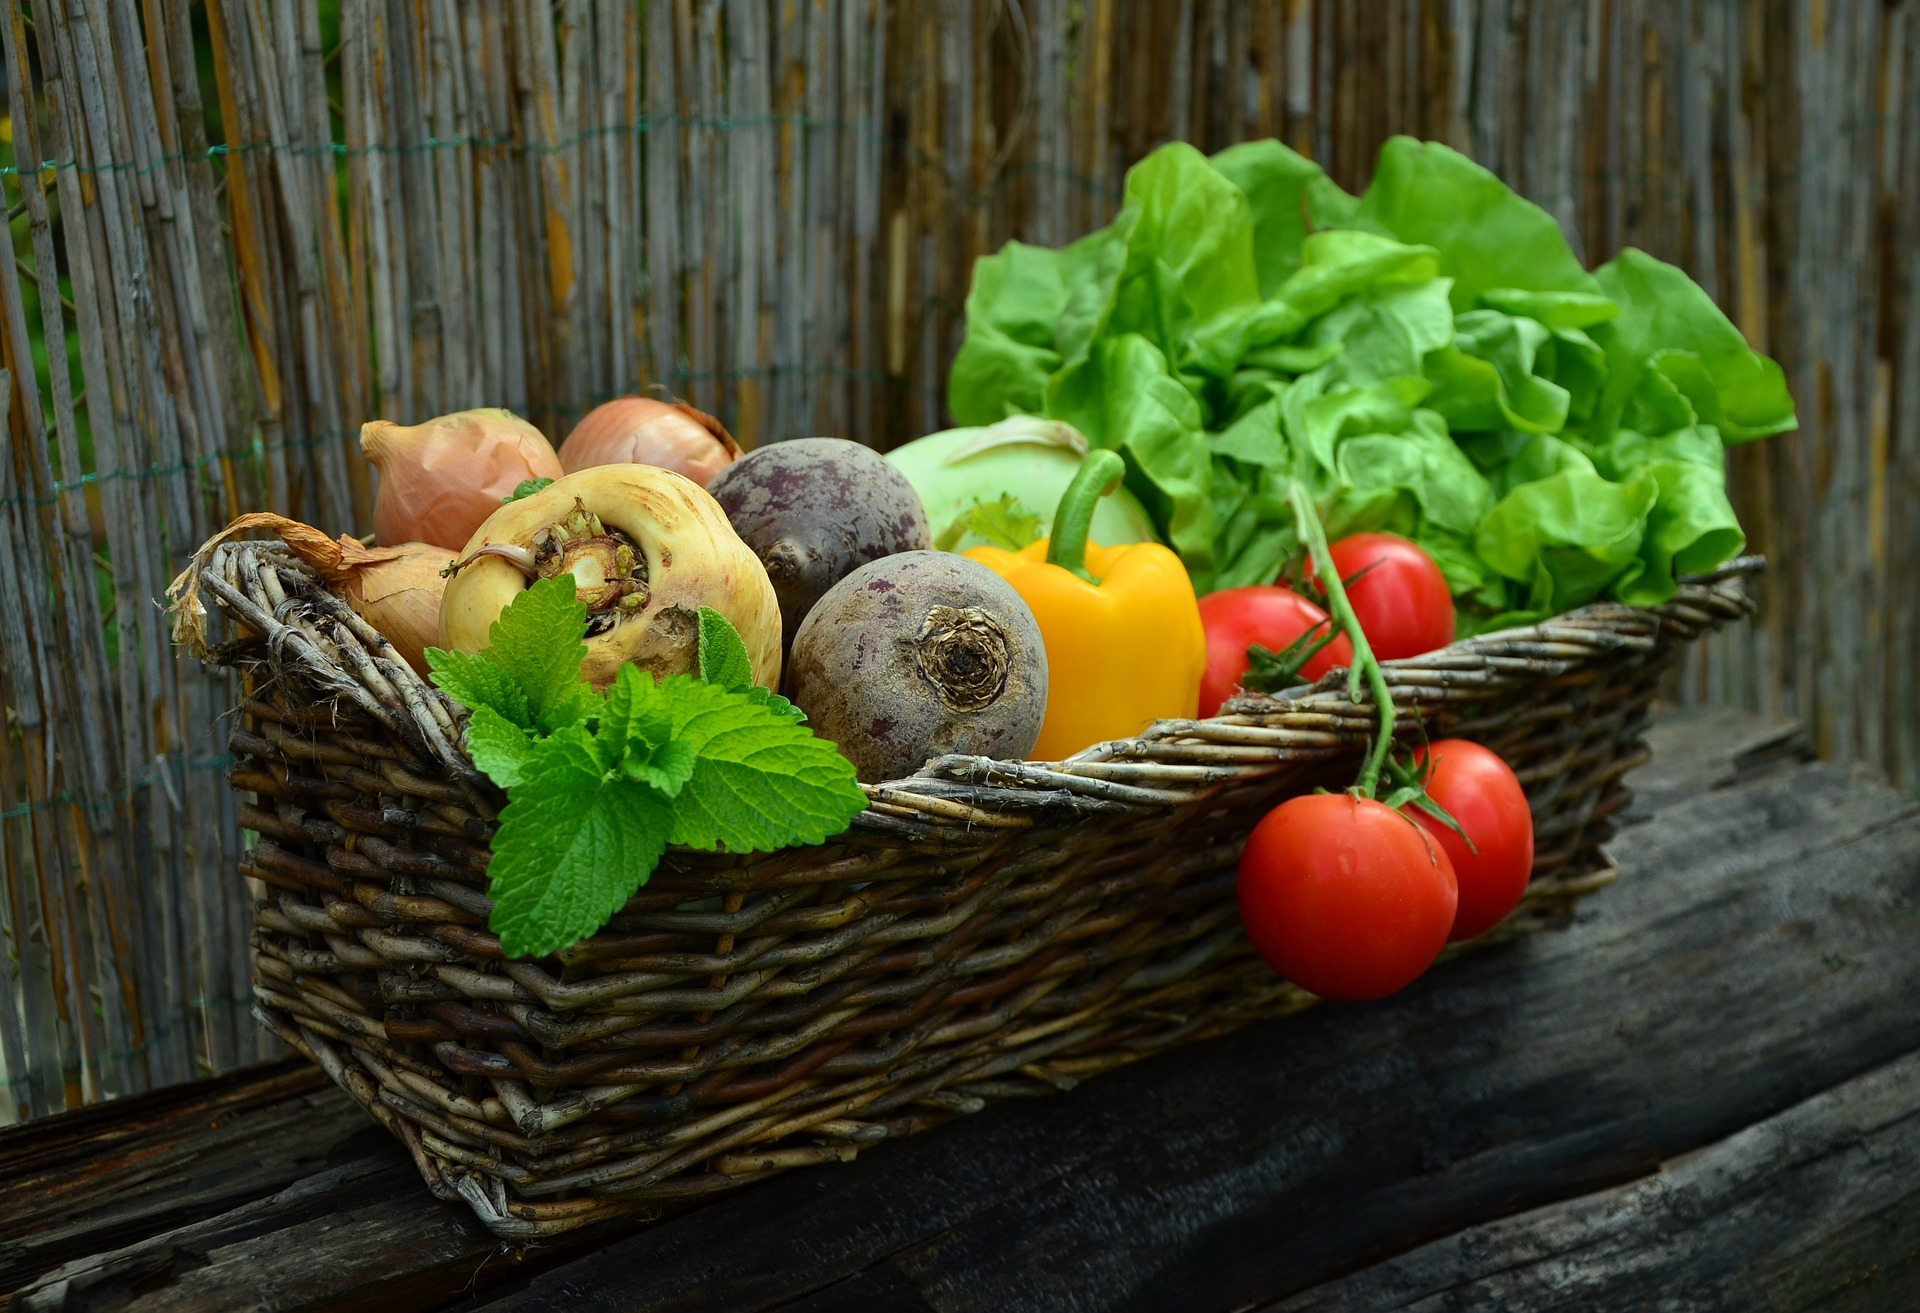 Basket of fruits and veggies